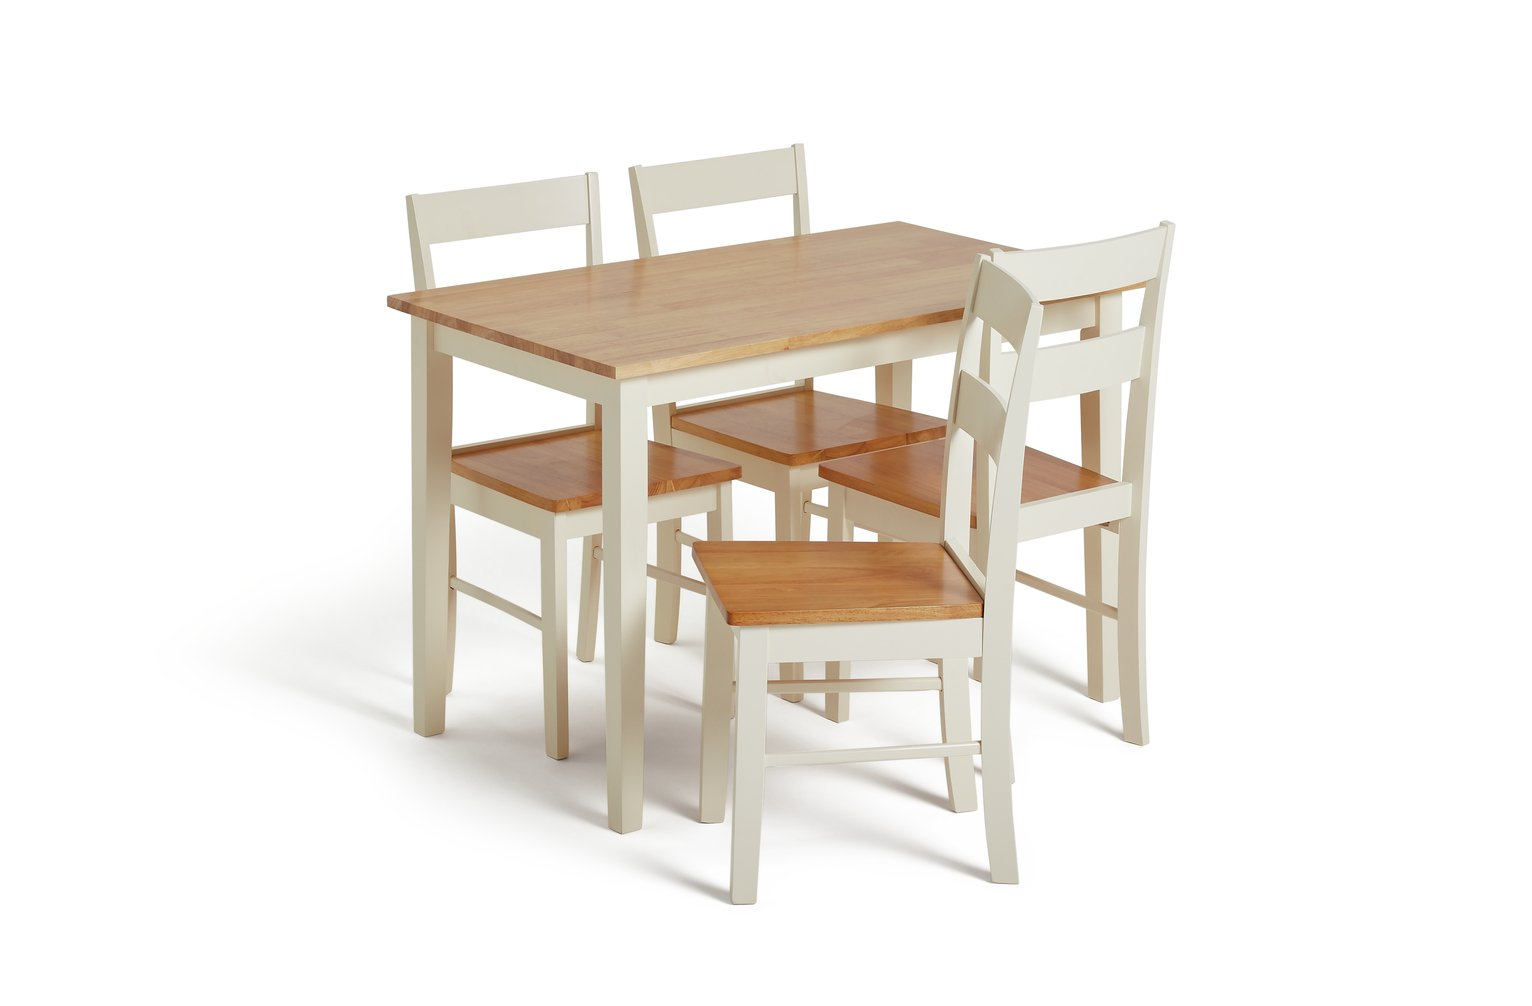 Argos Table And Chairs In Sale: SALE On Argos Home Chicago Solid Wood Table & 4 Two Tone